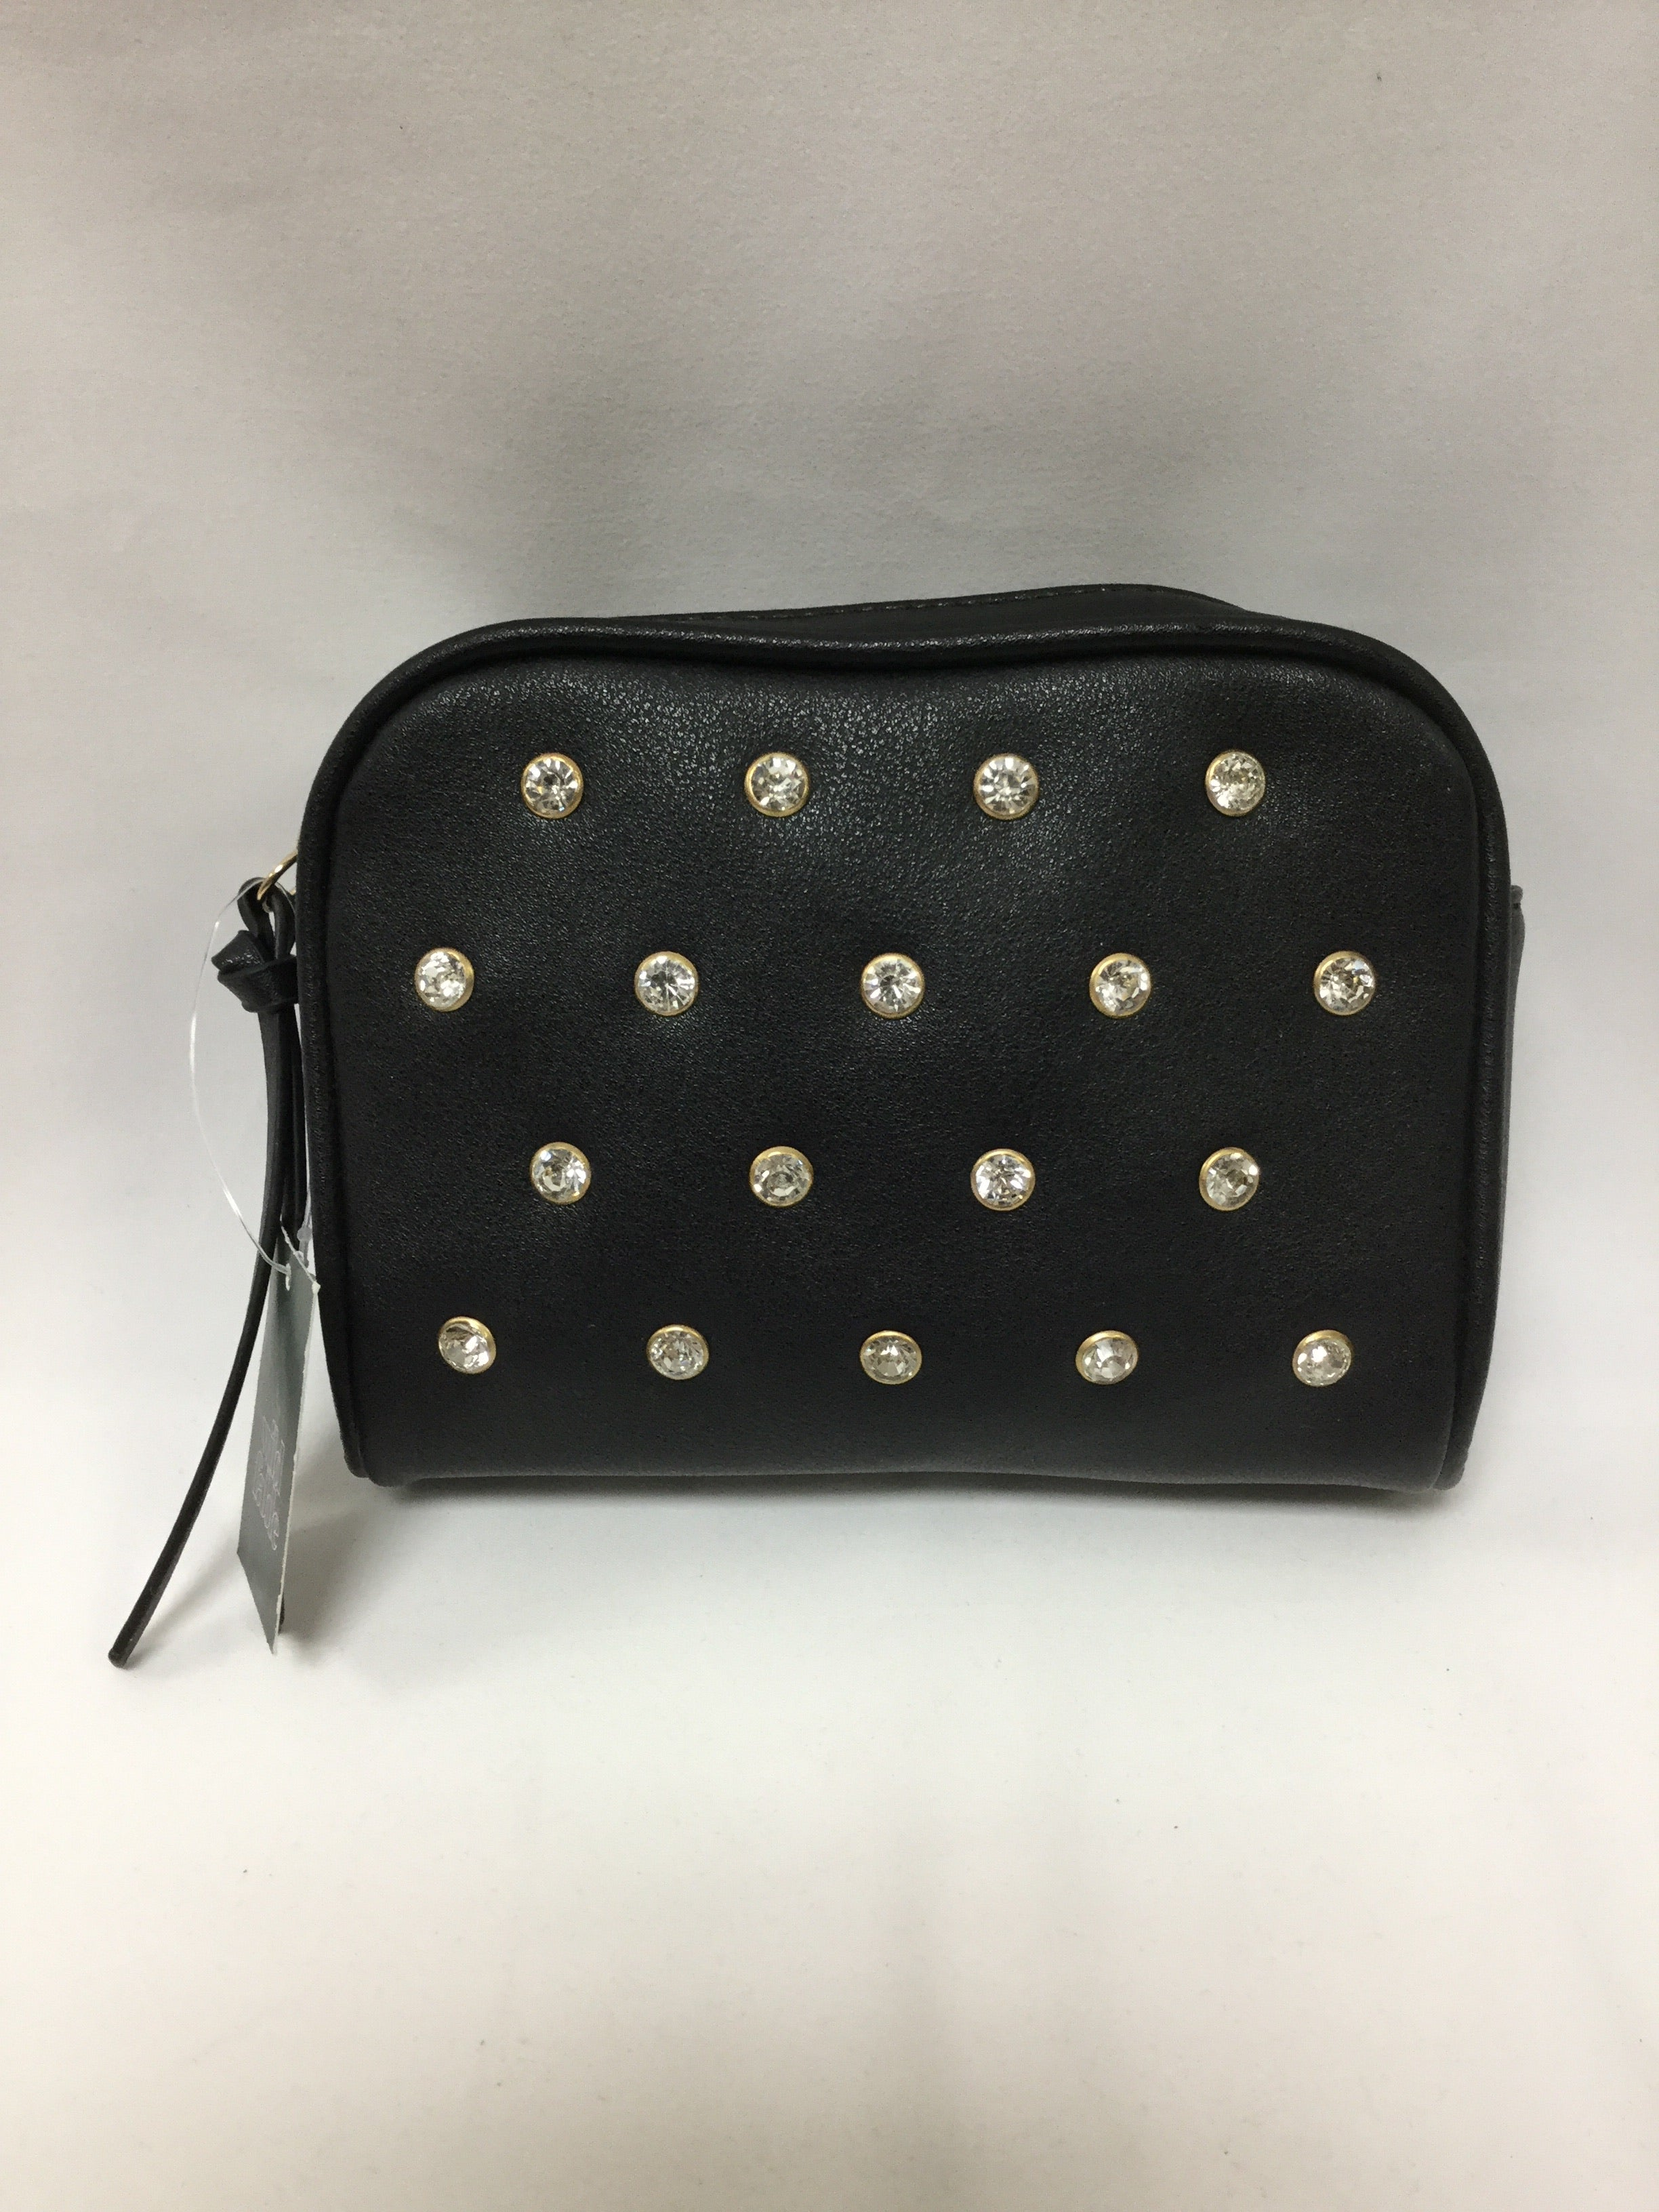 Primary Photo - BRAND: WILD FABLE <BR>STYLE: HANDBAG <BR>COLOR: BLACK <BR>SIZE: SMALL <BR>SKU: 155-15599-228721